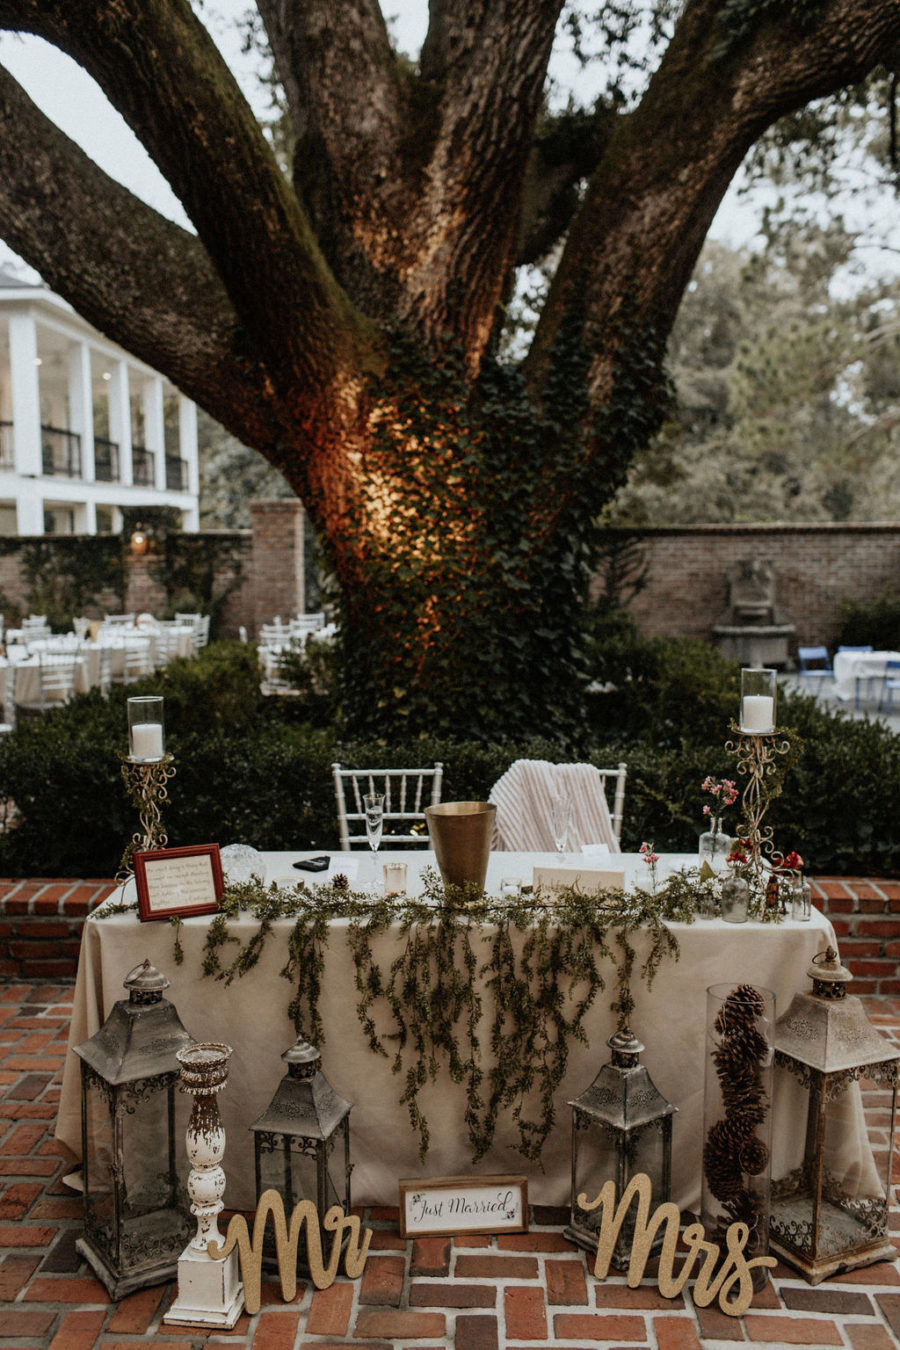 Wedding sweetheart table: Magical Winter Wedding by Meghan Melia Photography featured on Nashville Bride Guide!